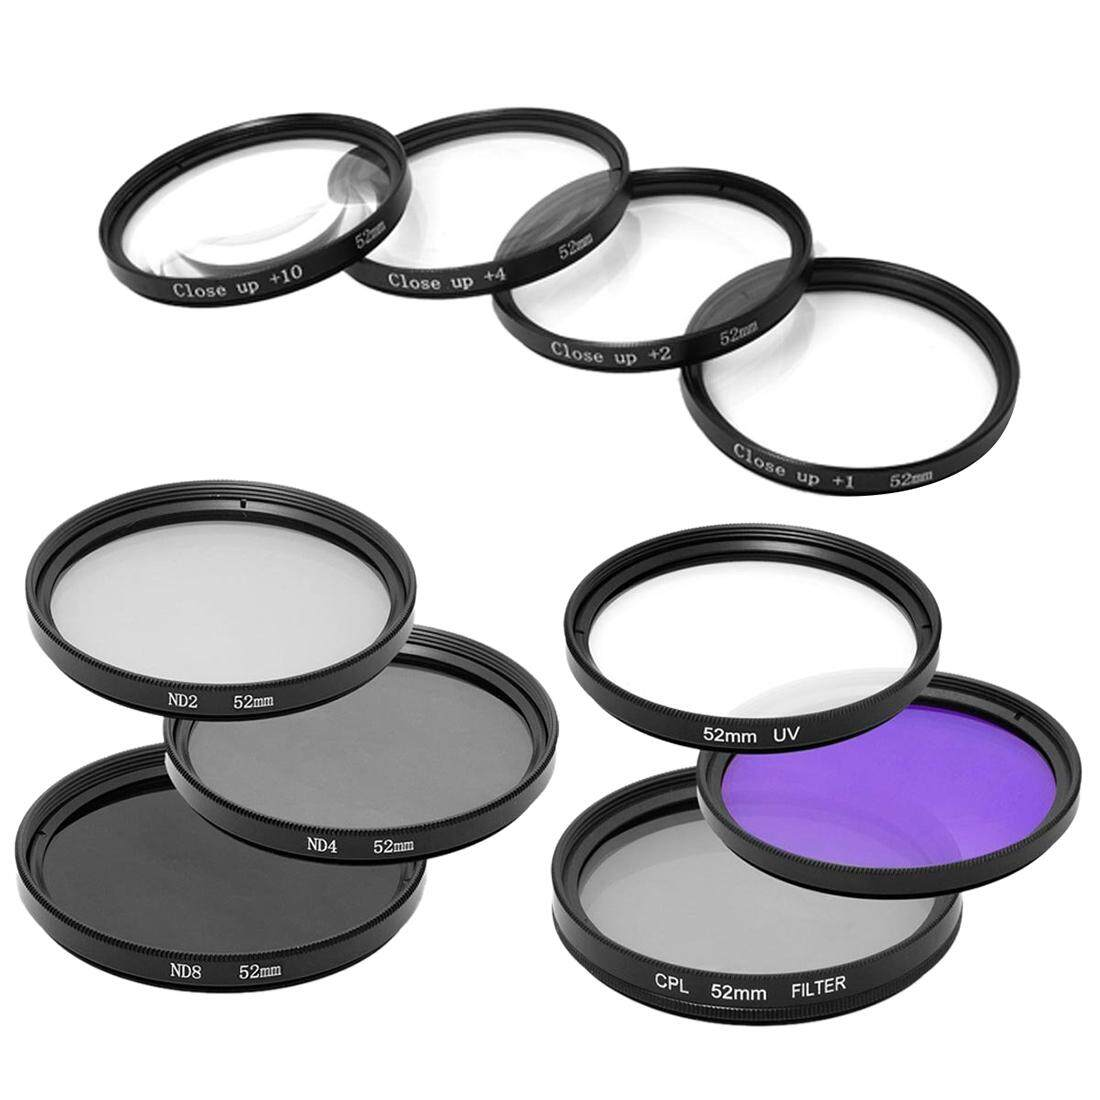 1 set 52mm Close up + UV CPL FLD +ND2 ND4 ND8 Filter for Nikon D7100 D7000 D5200 D5100 D3200 D3100 D3000 D90 D4 D3X D800